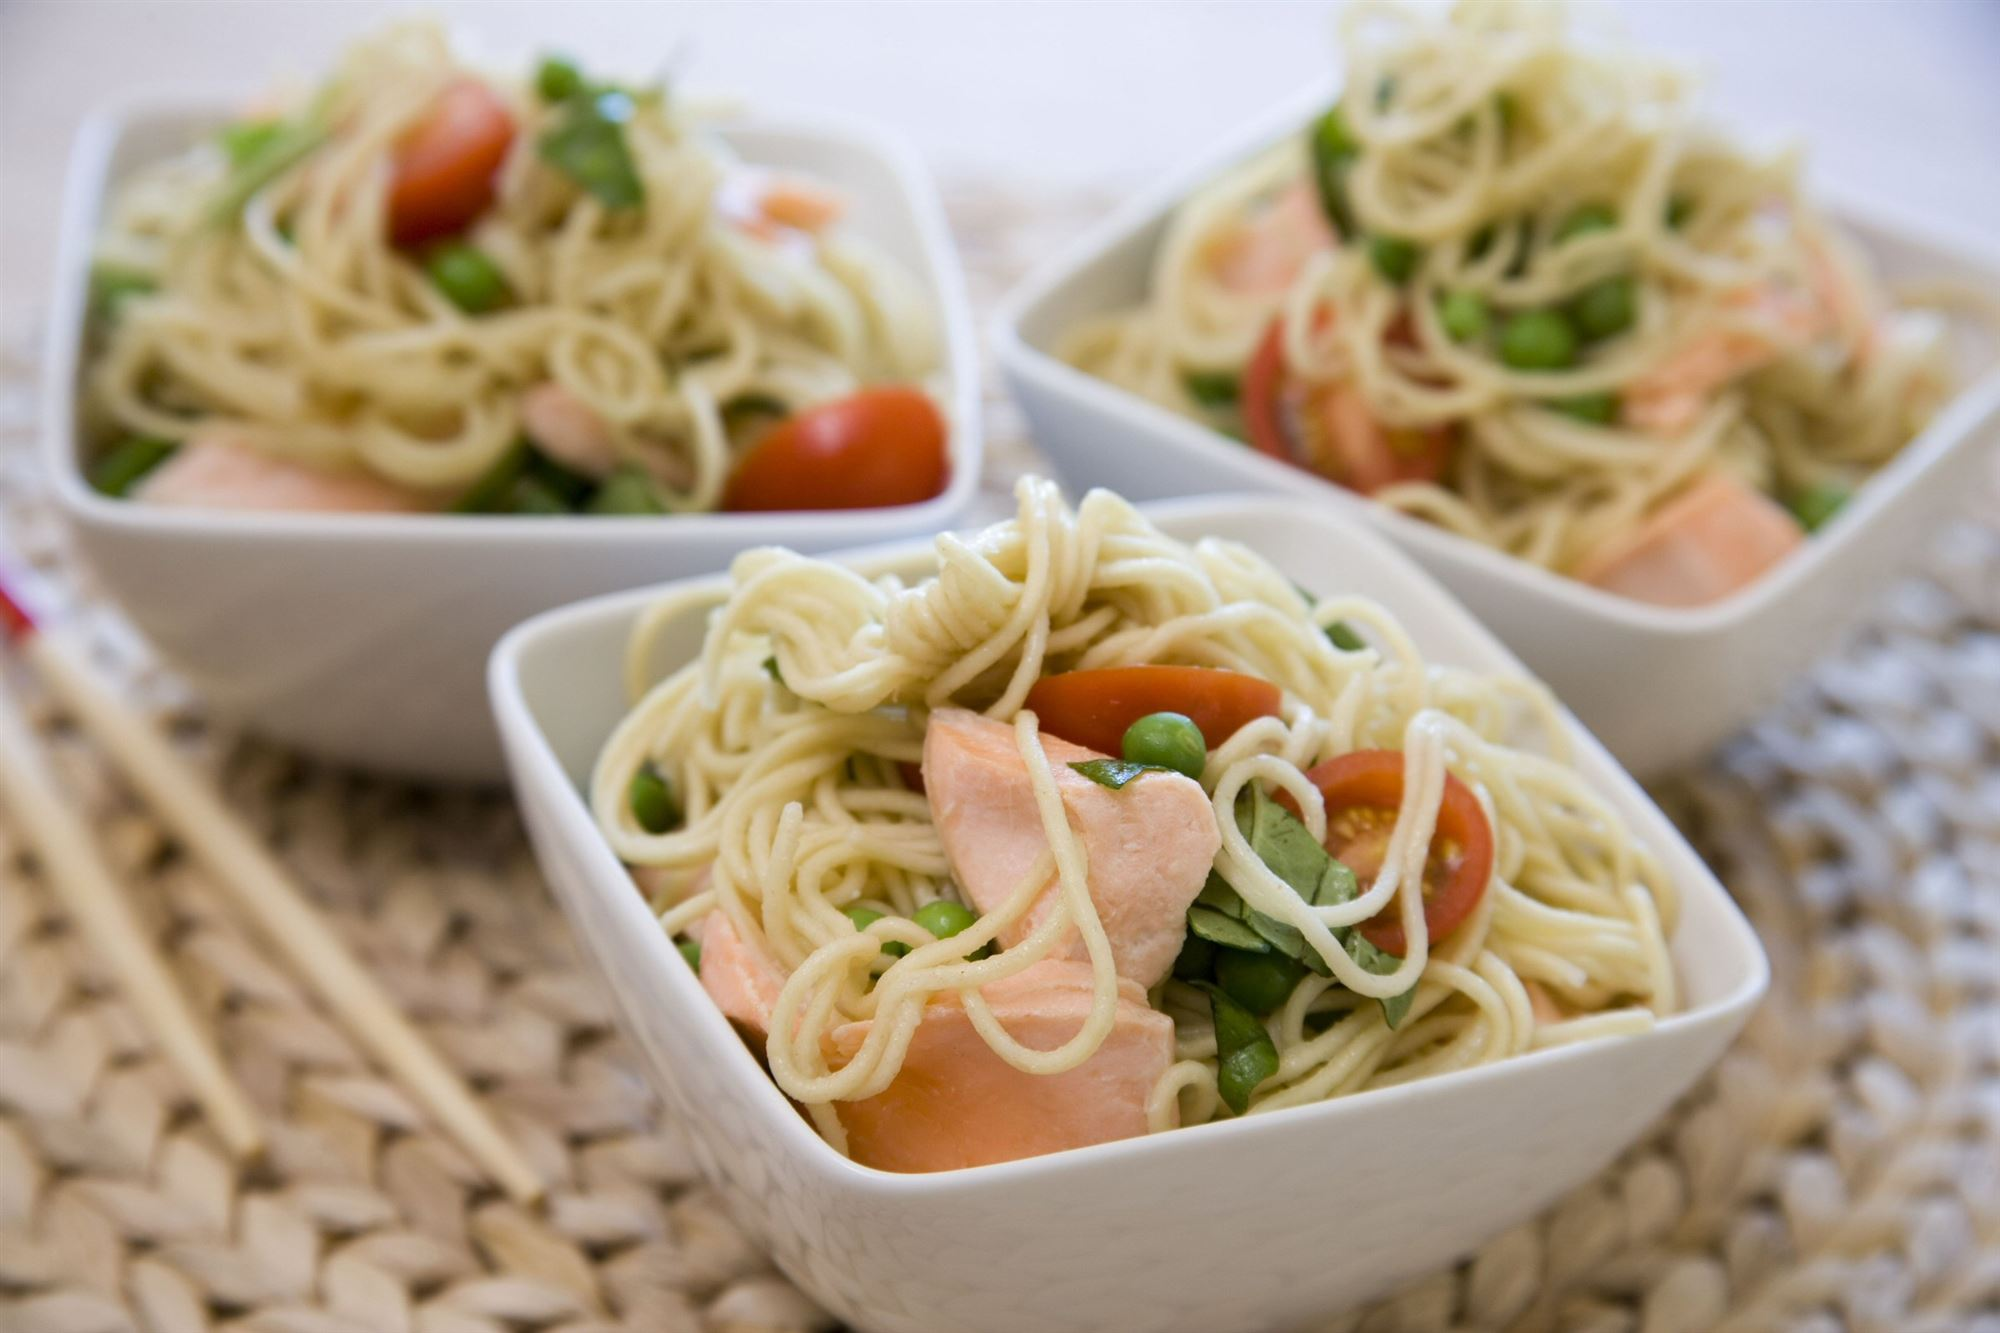 Pinky Green Noodles